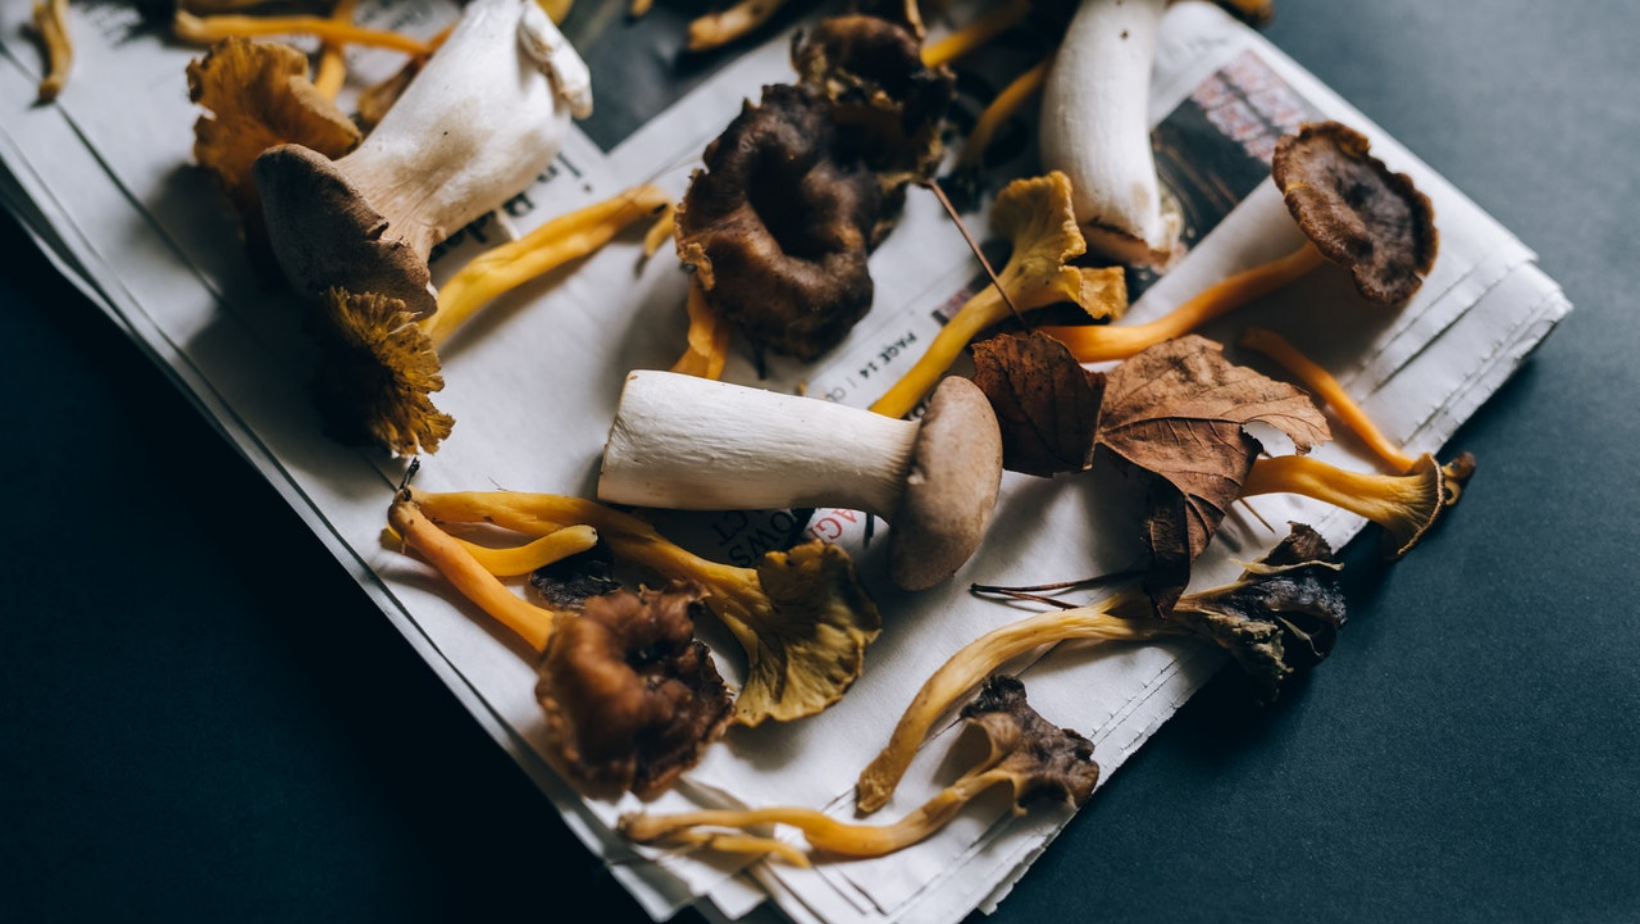 Simple Ways to Add Medicinal Mushrooms to Your Daily Routine